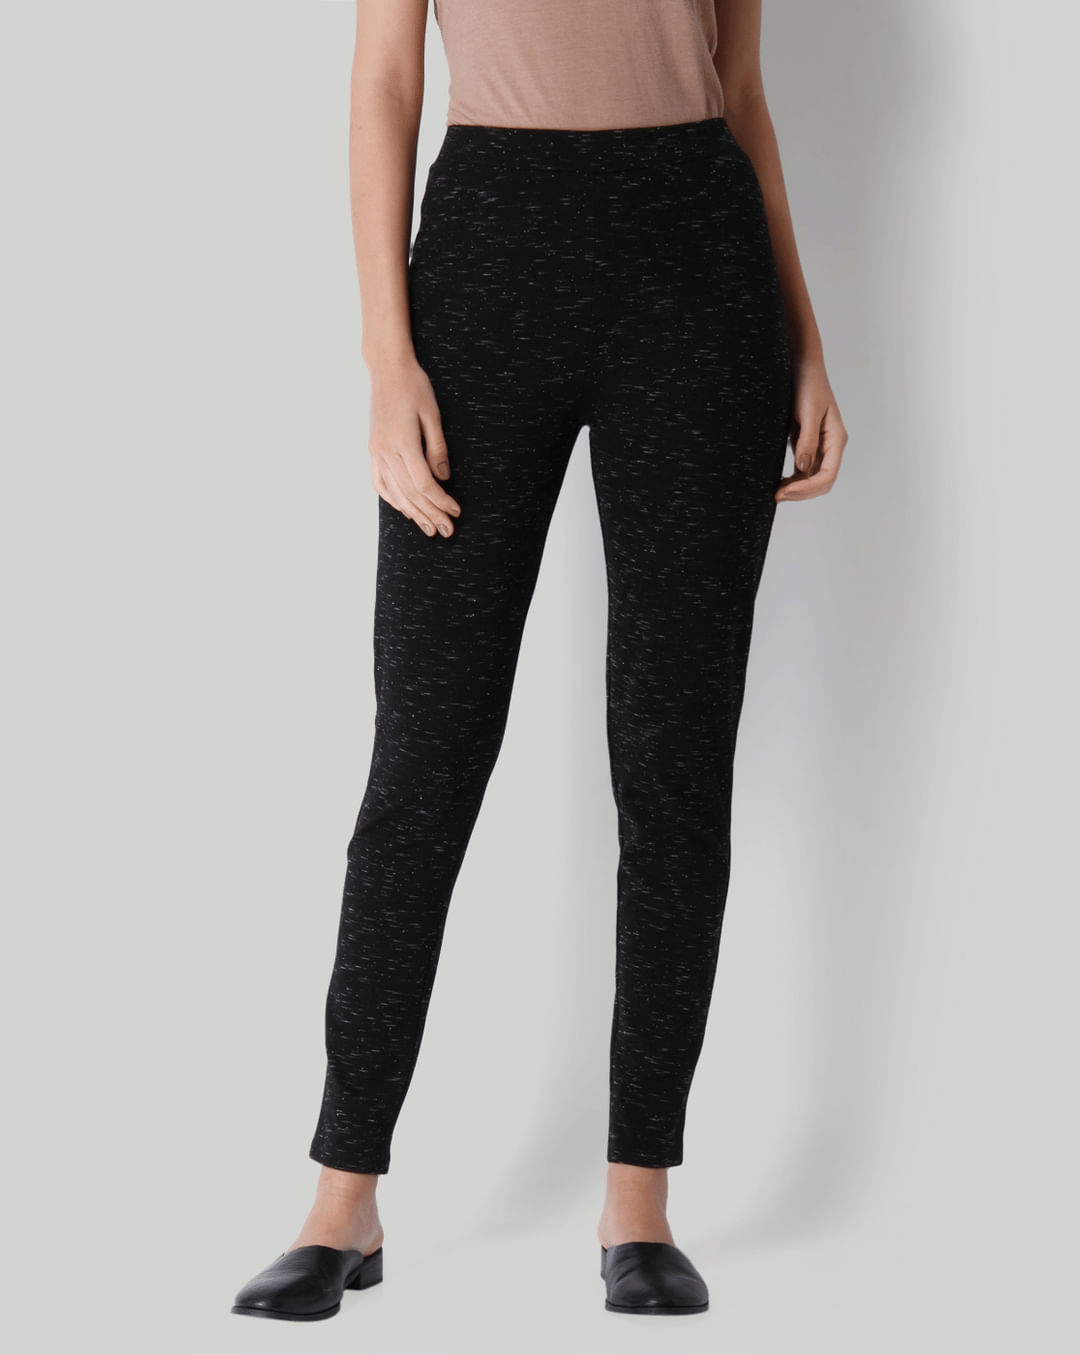 Buy Women Black Slim Fit Pants Online Veromoda Free shipping and free returns on eligible items. vero moda